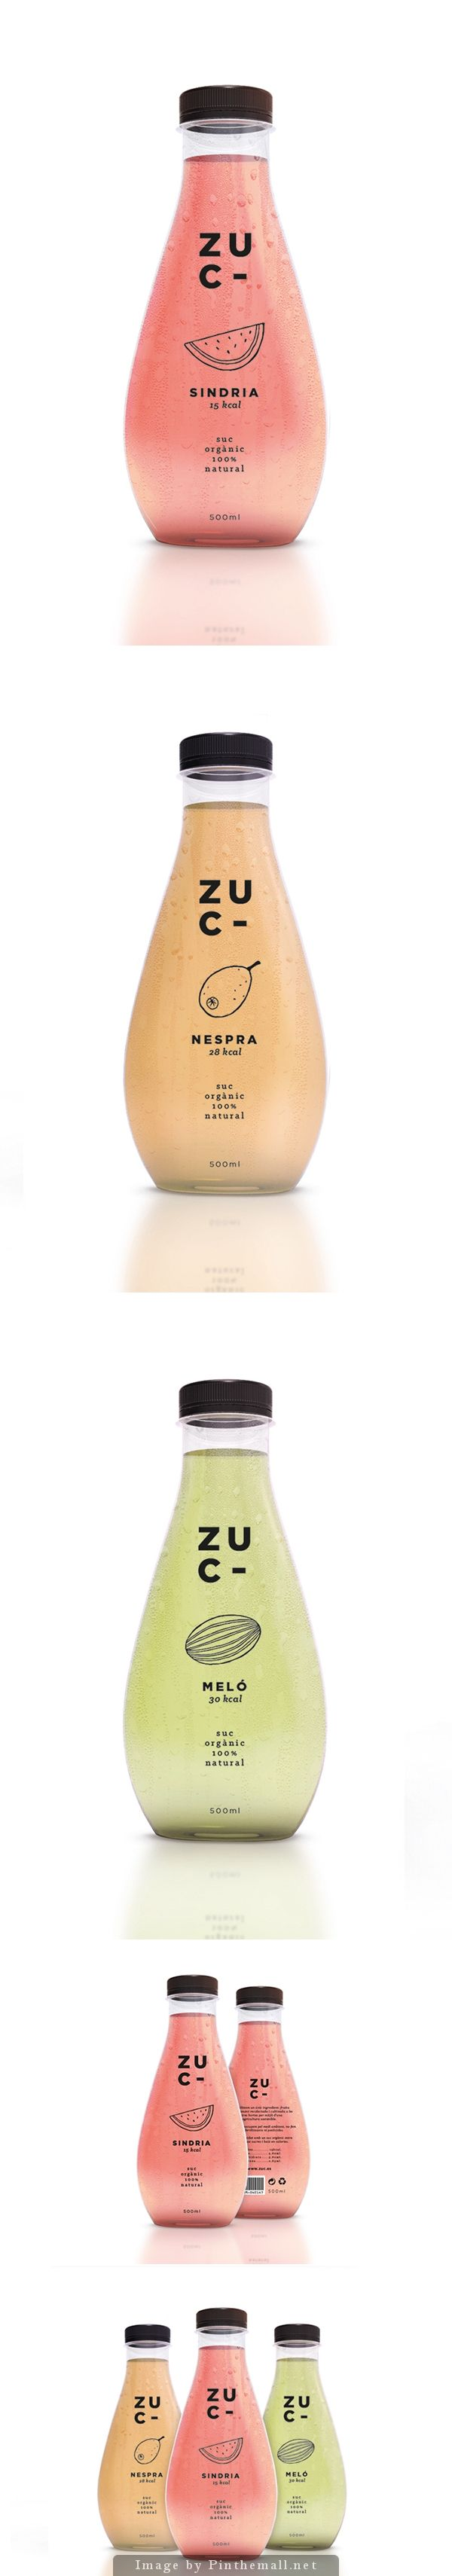 Zuc #packaging #packaging #package #design #pikock www.pikock.com #inspiration #product